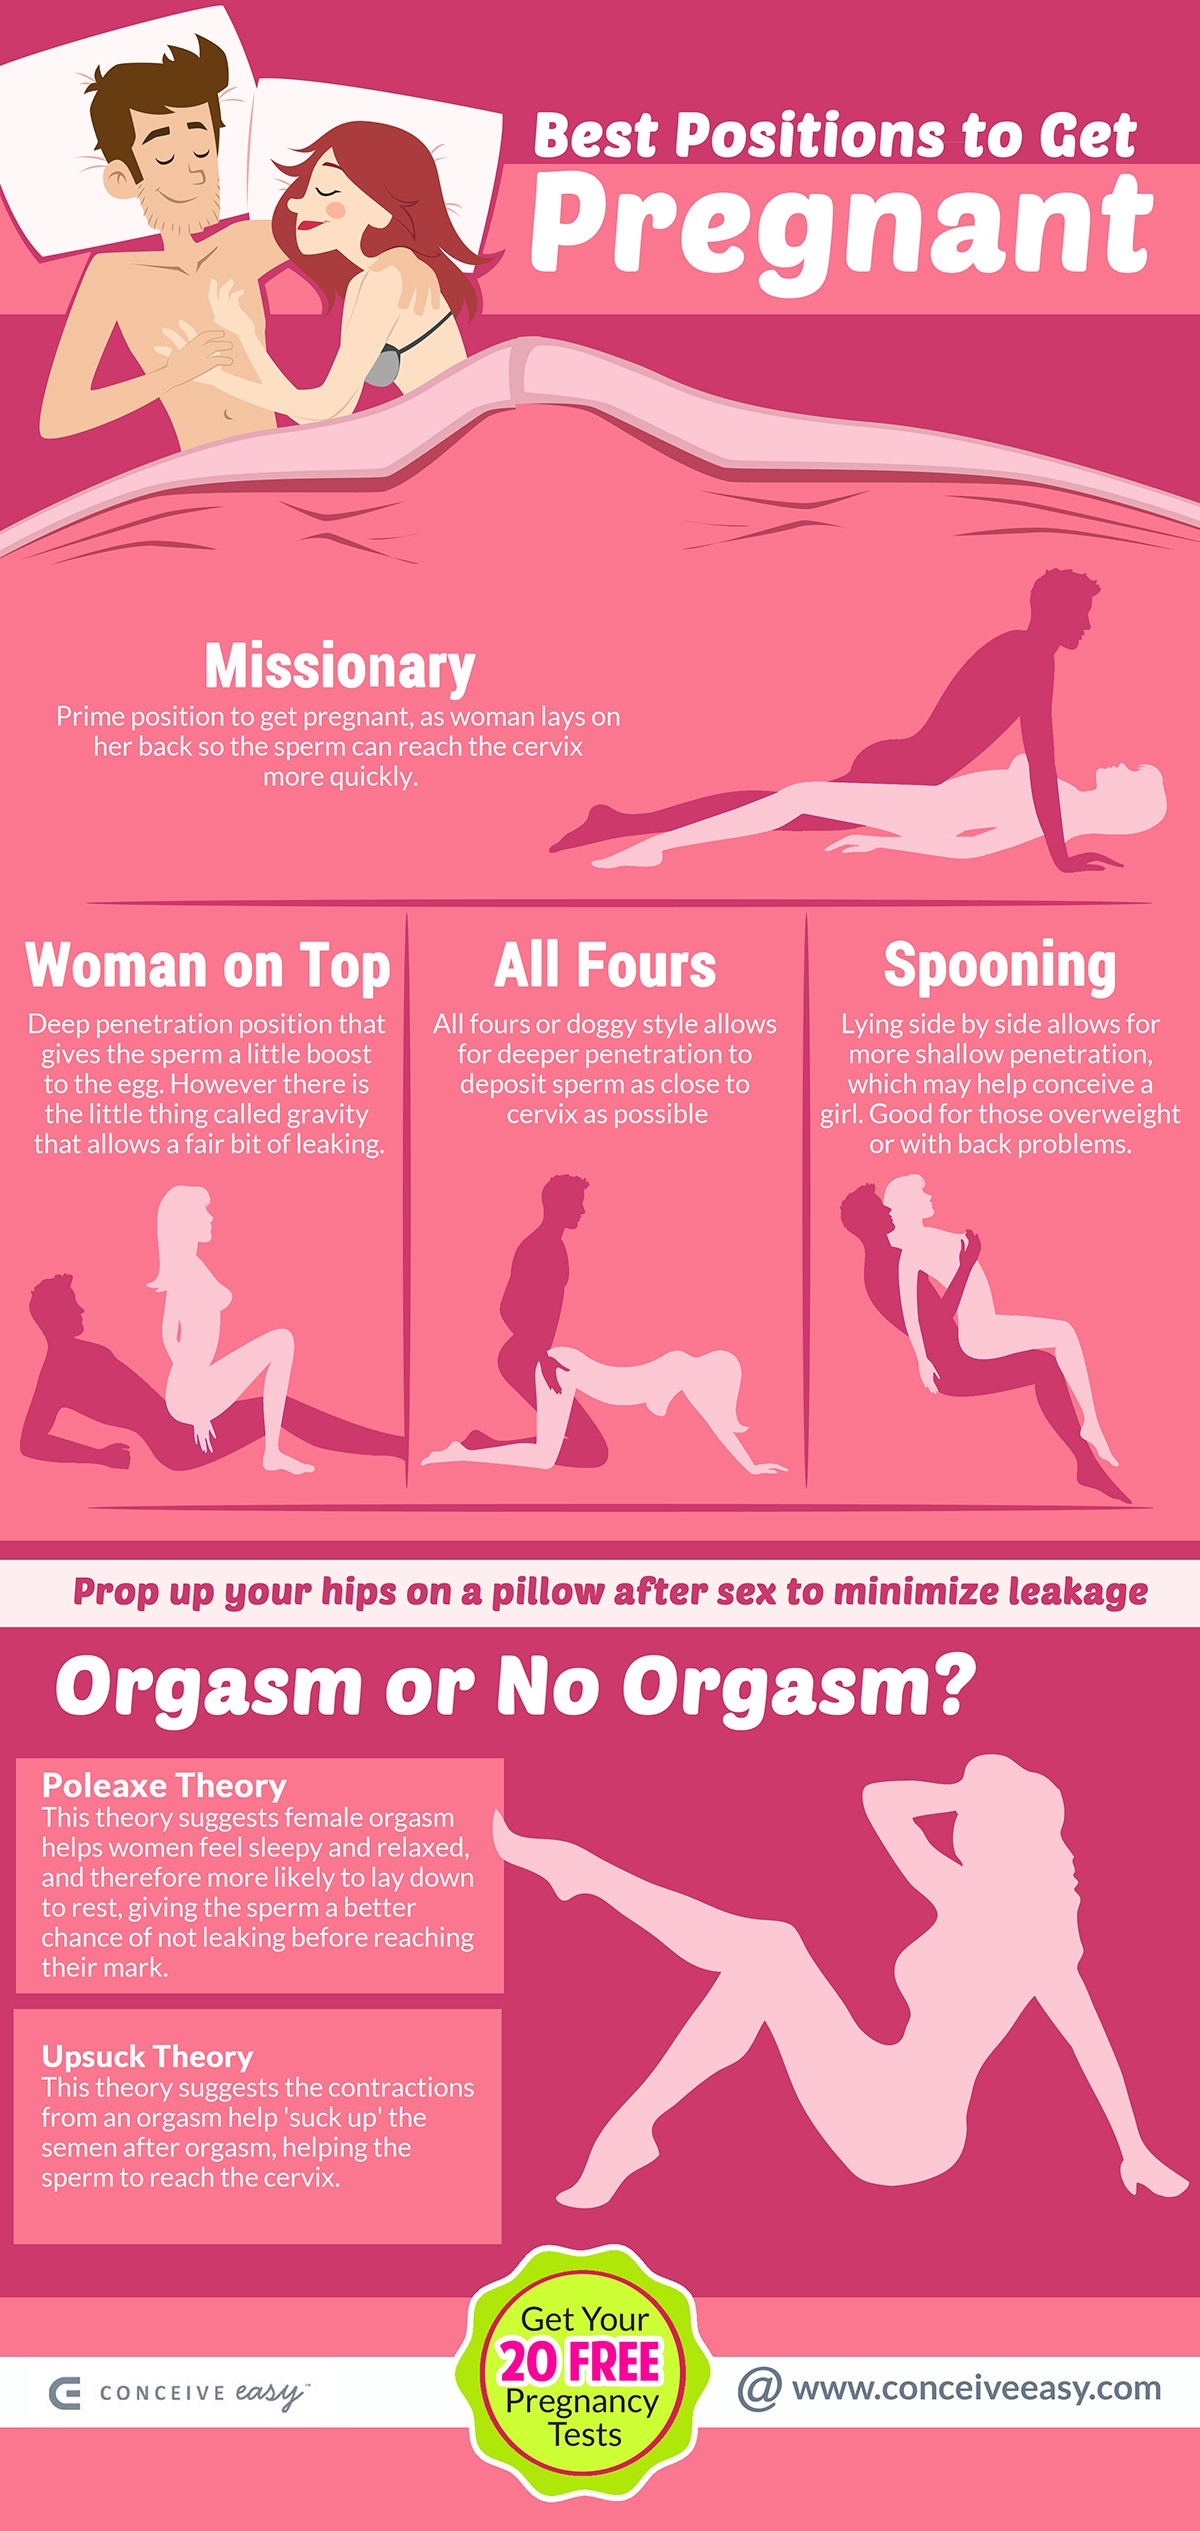 Best Positions To Get Pregnant Infographic  Conceive Easy -4332